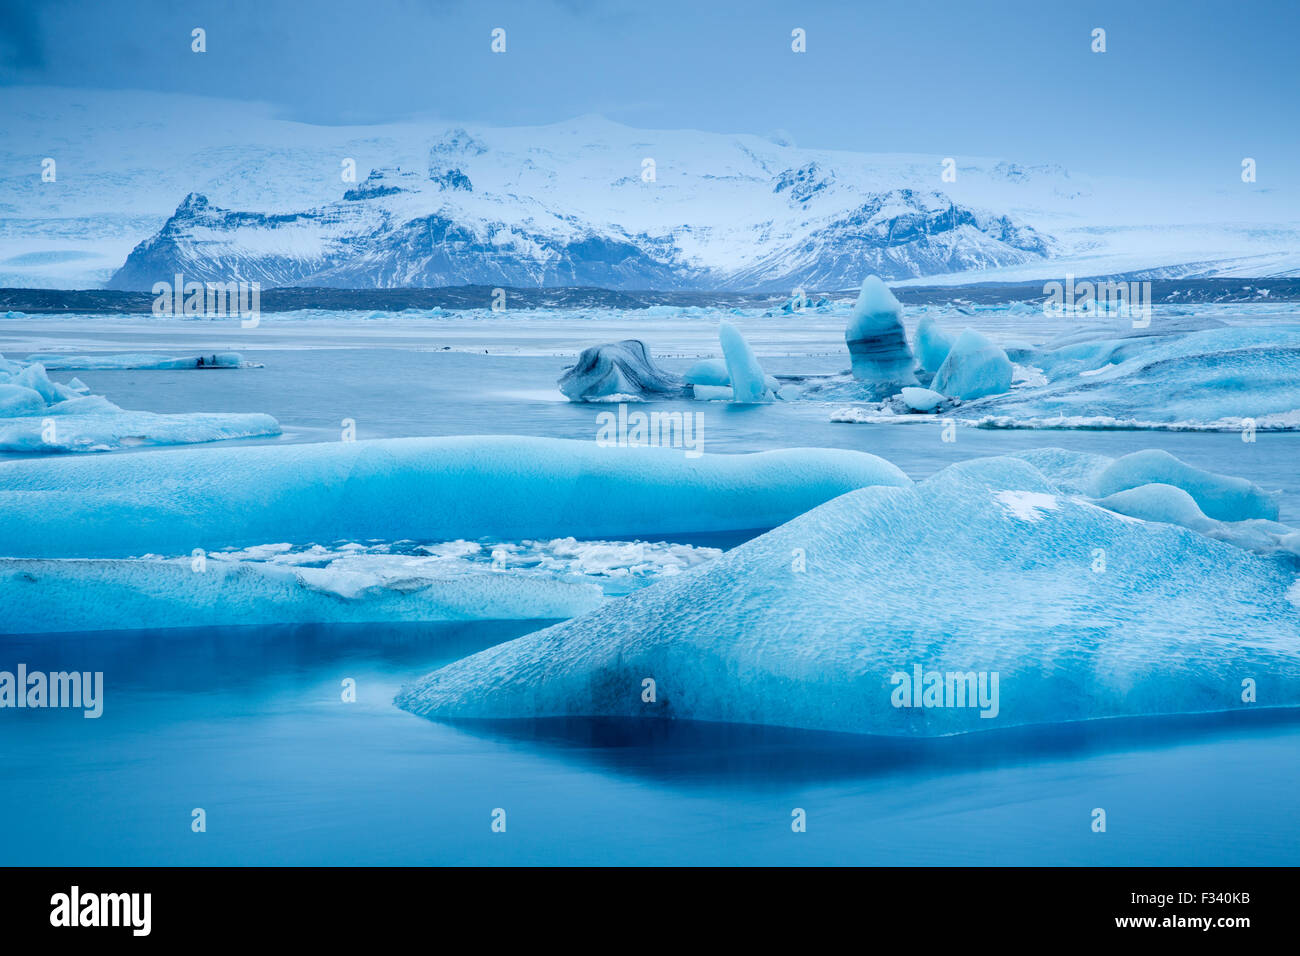 ice in the galcial lagoon at Jökulsárlón, Iceland - Stock Image